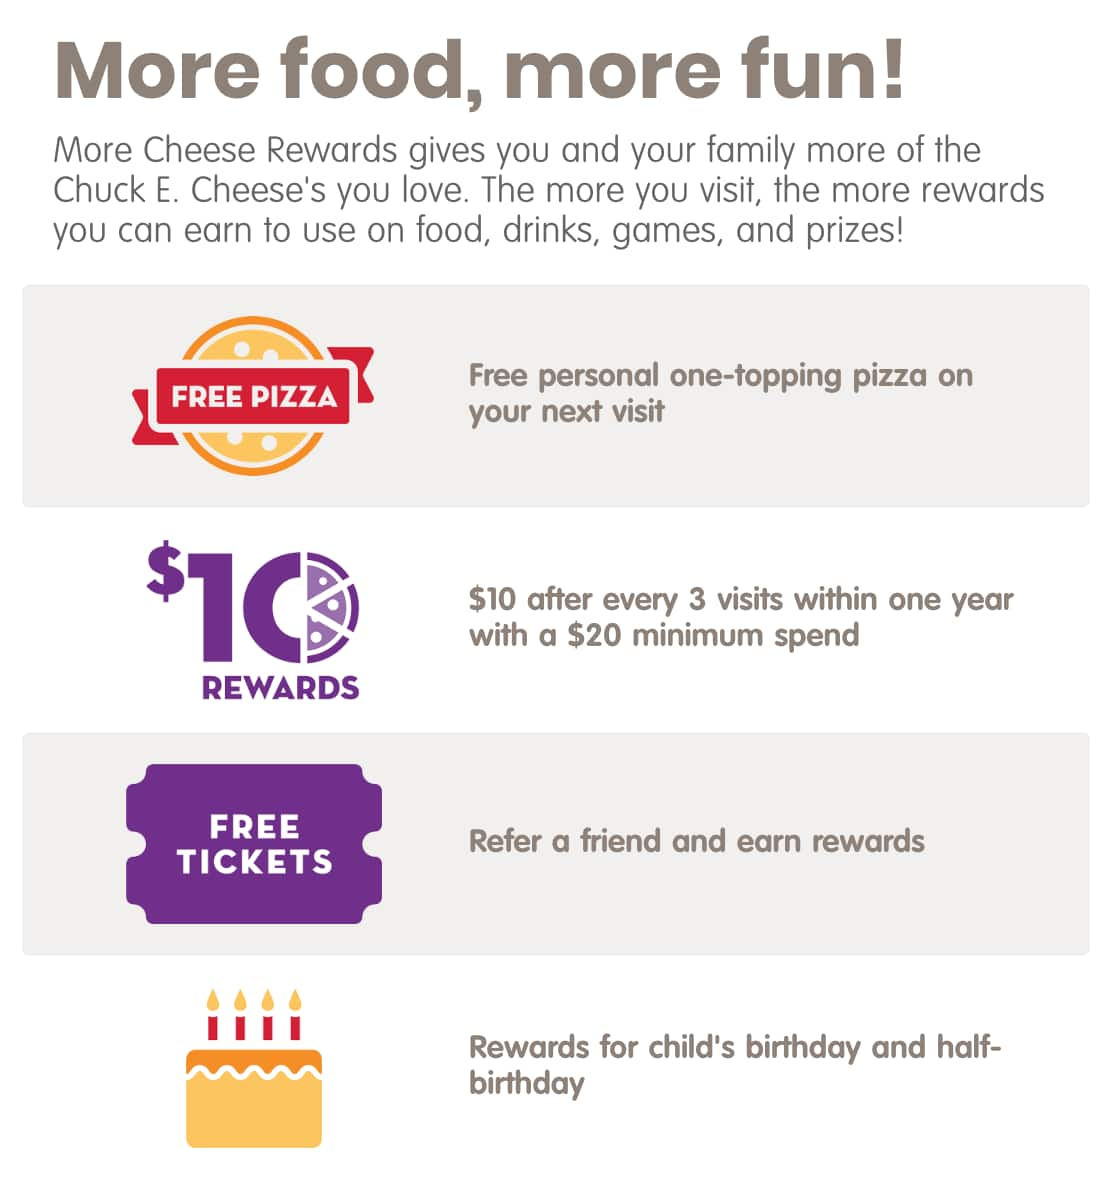 Chuck E. Cheese: Free personal one-topping pizza